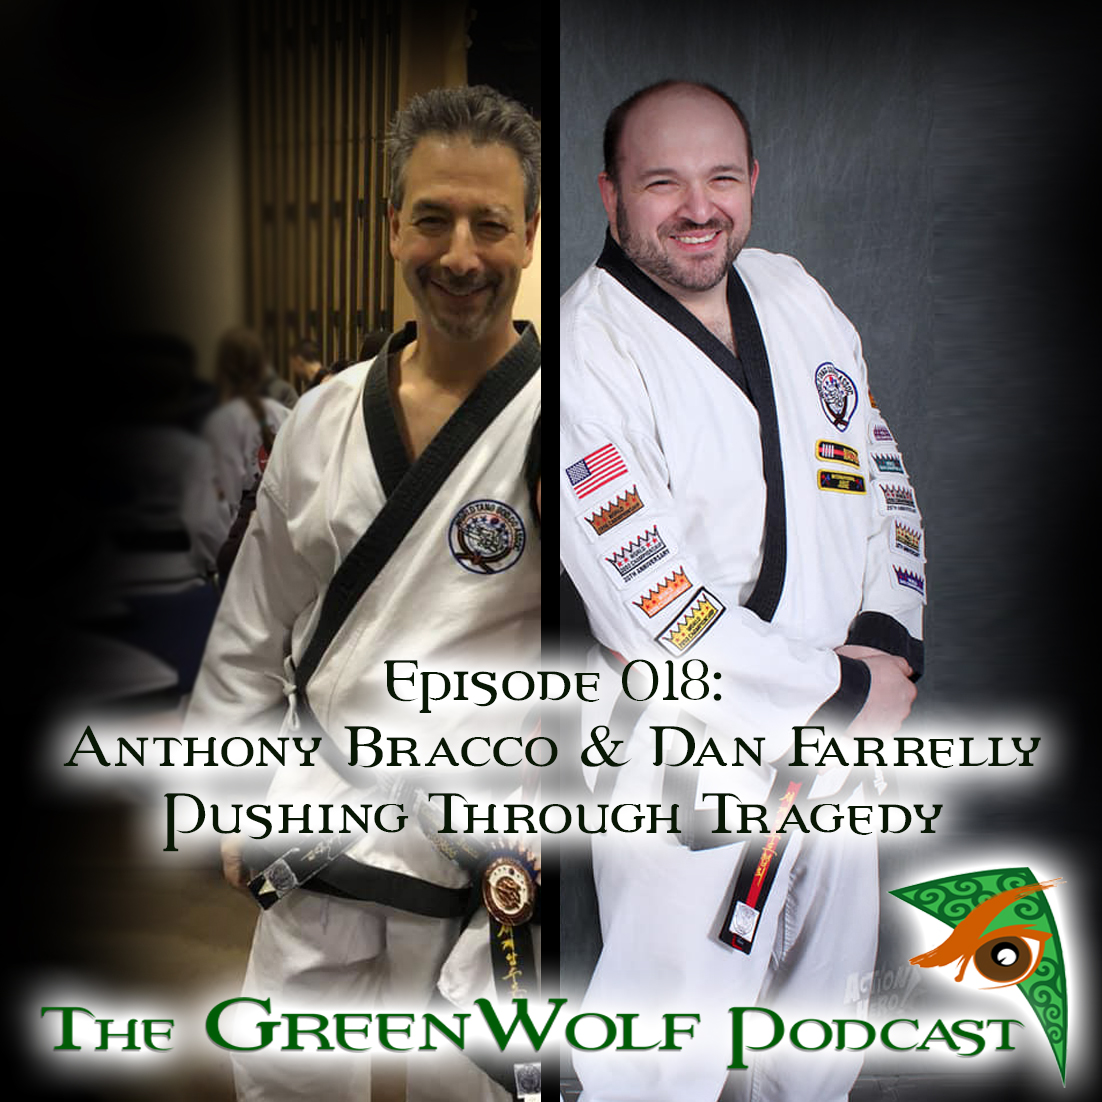 The GreenWolf Podcast - Ep 018 -Pushing Through Tragedy with Dan Farrelly & Anthony Bracco